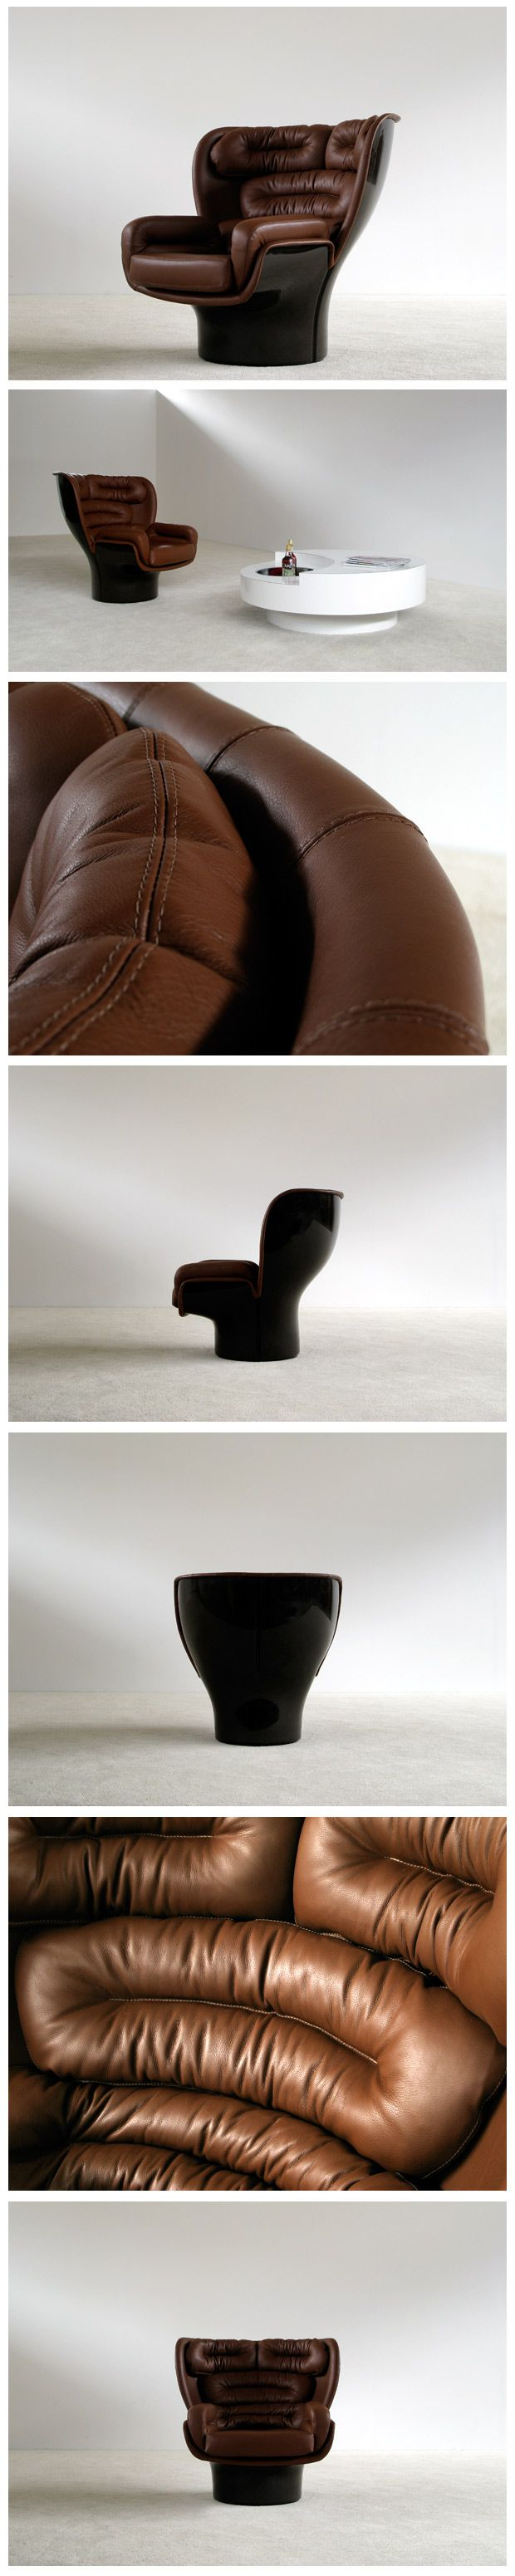 1000 ideas about joe colombo on pinterest luminaire design product - Elda Lounge Chair Joe Colombo